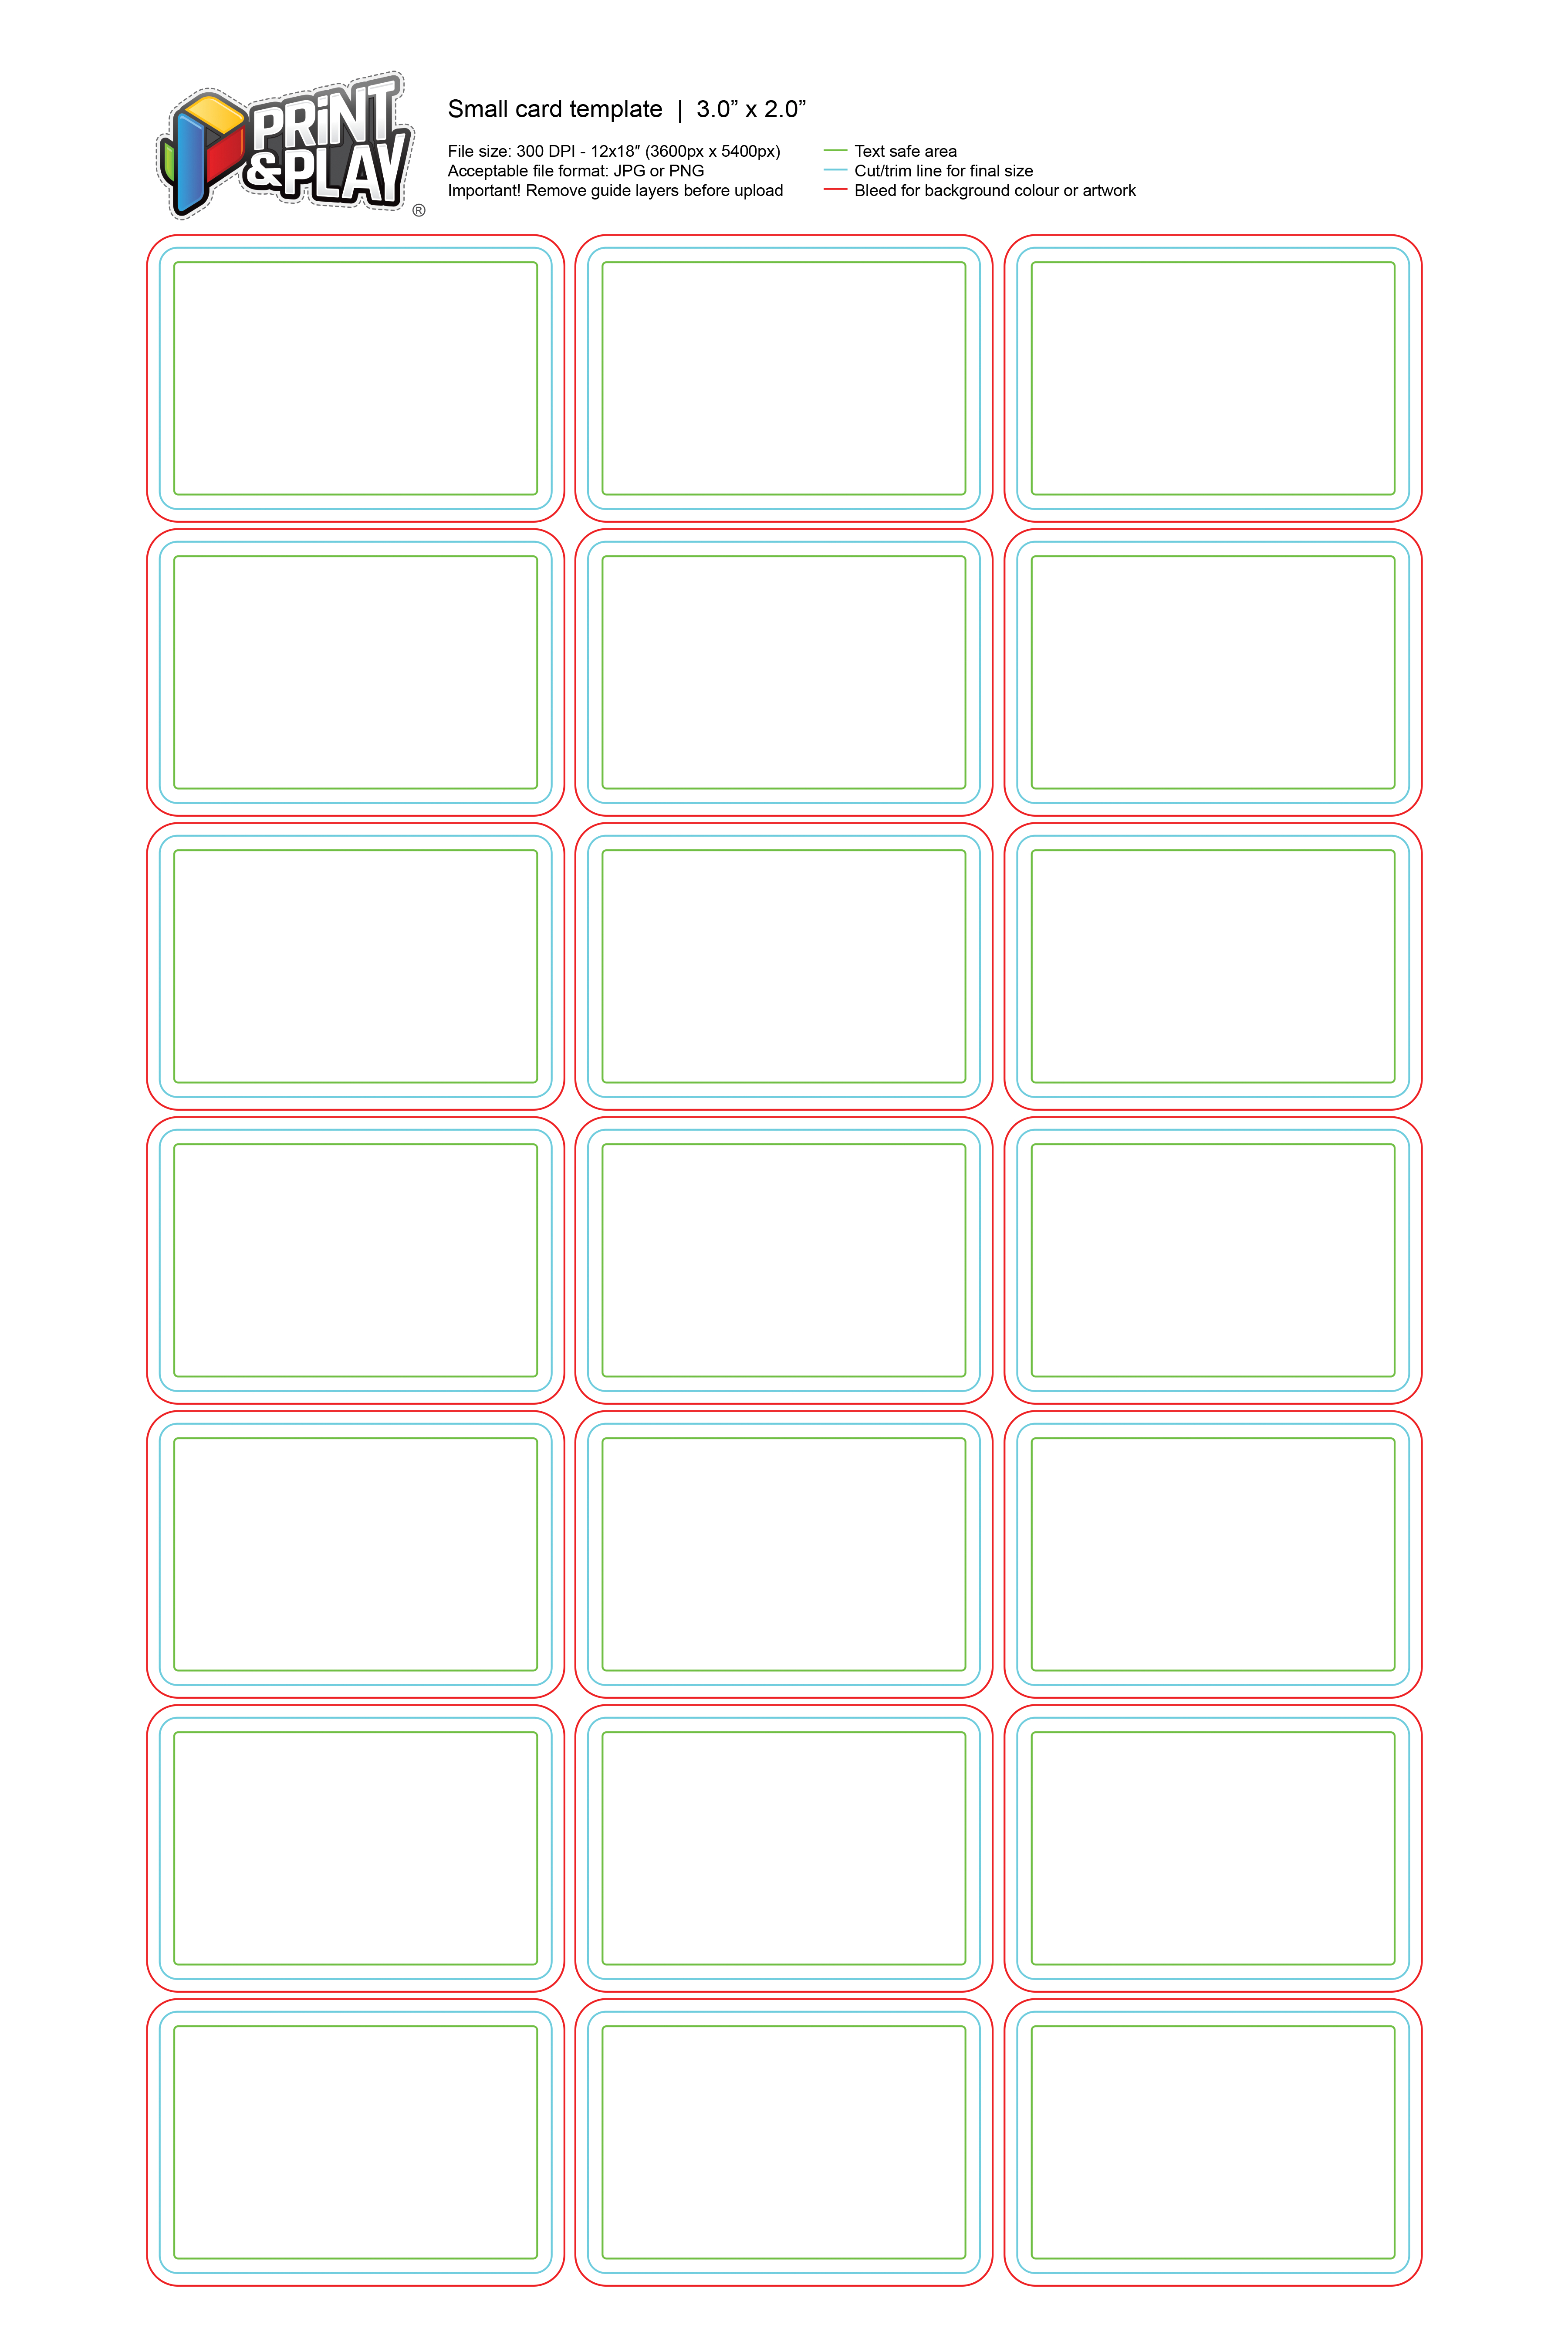 Playing Cards  Formatting  Templates  Print  Play With Regard To Playing Card Template Illustrator